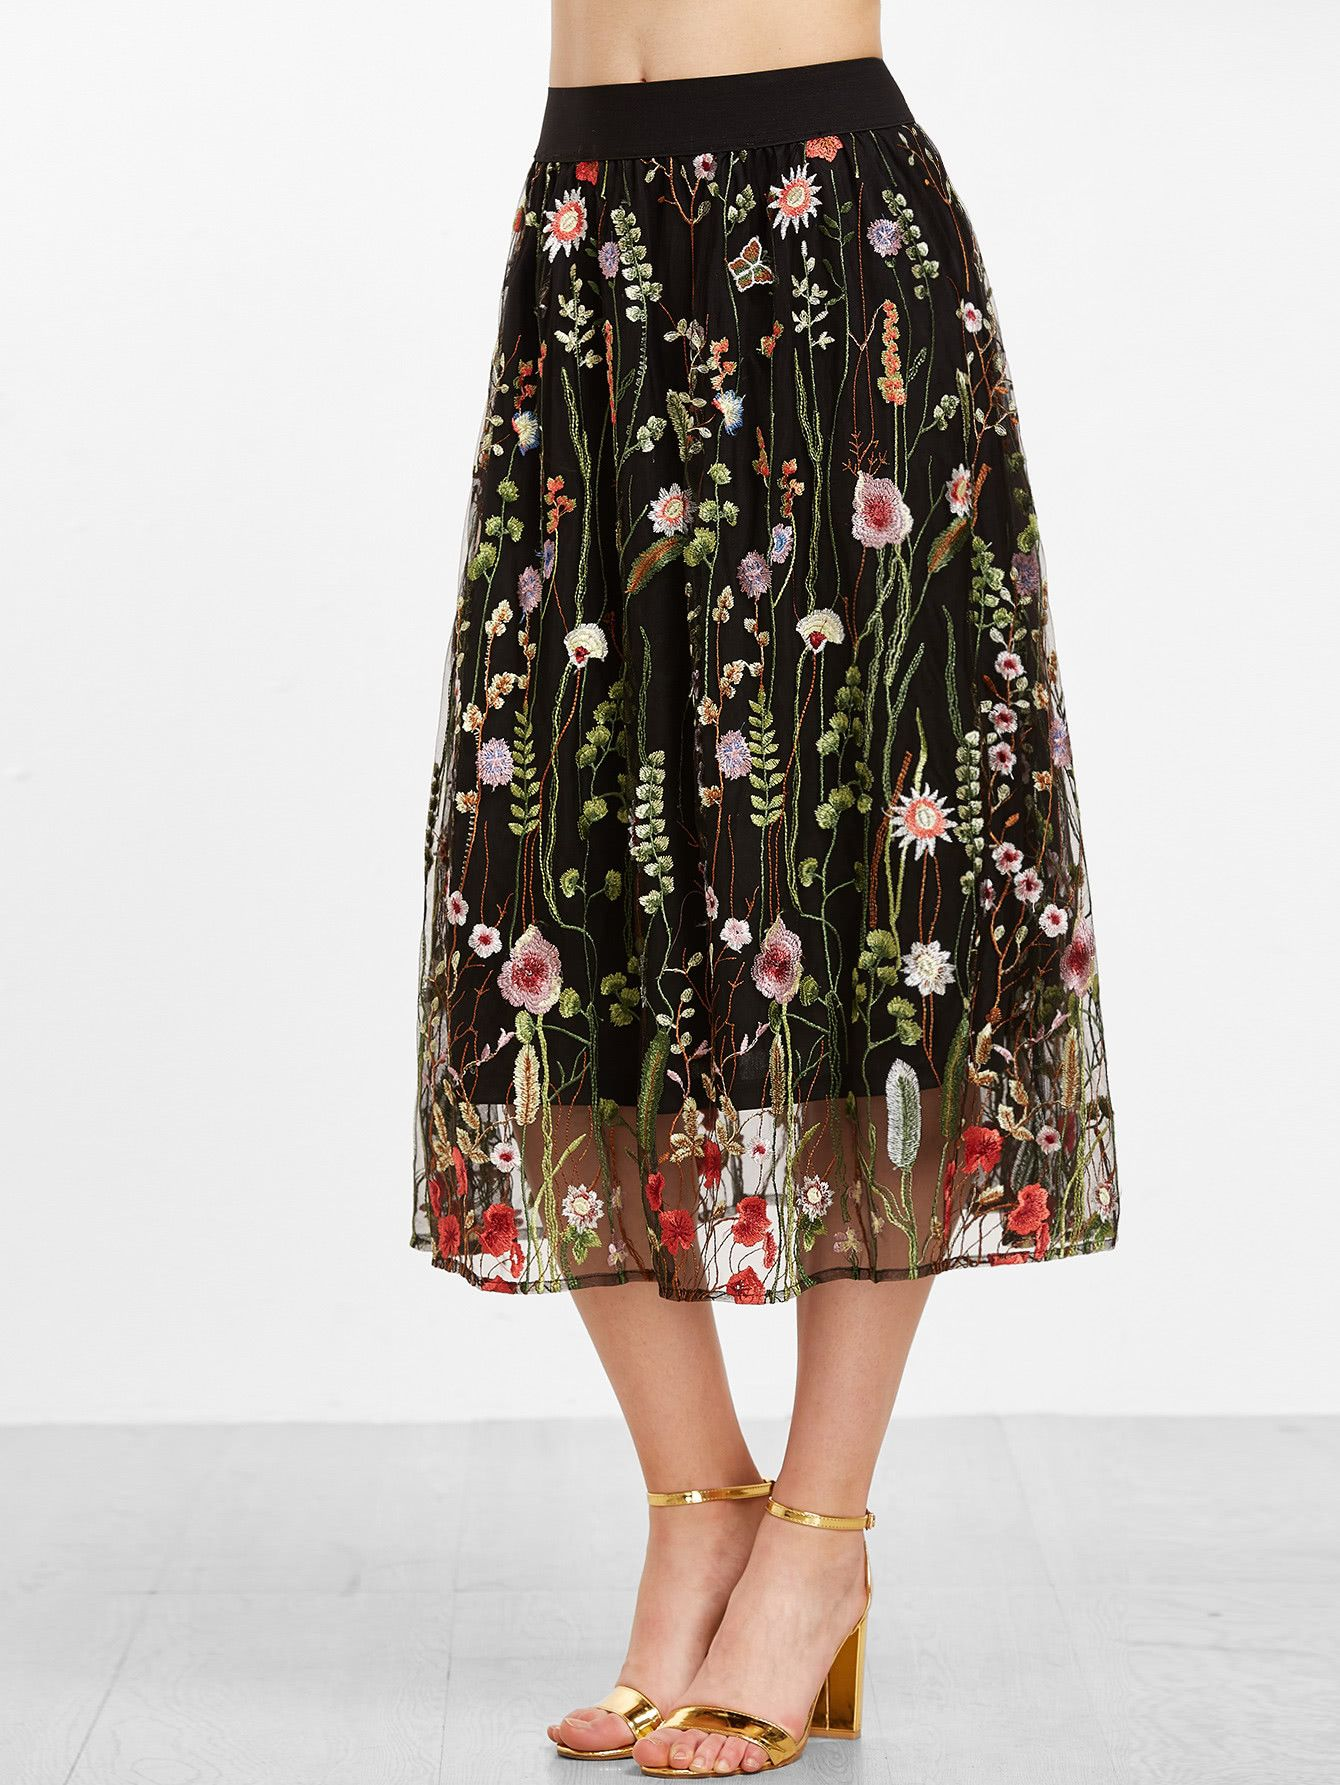 fd3481dd2 Shop Floral Embroidered Mesh Overlay Tea Length Skirt online. SheIn offers Floral  Embroidered Mesh Overlay Tea Length Skirt & more to fit your fashionable ...